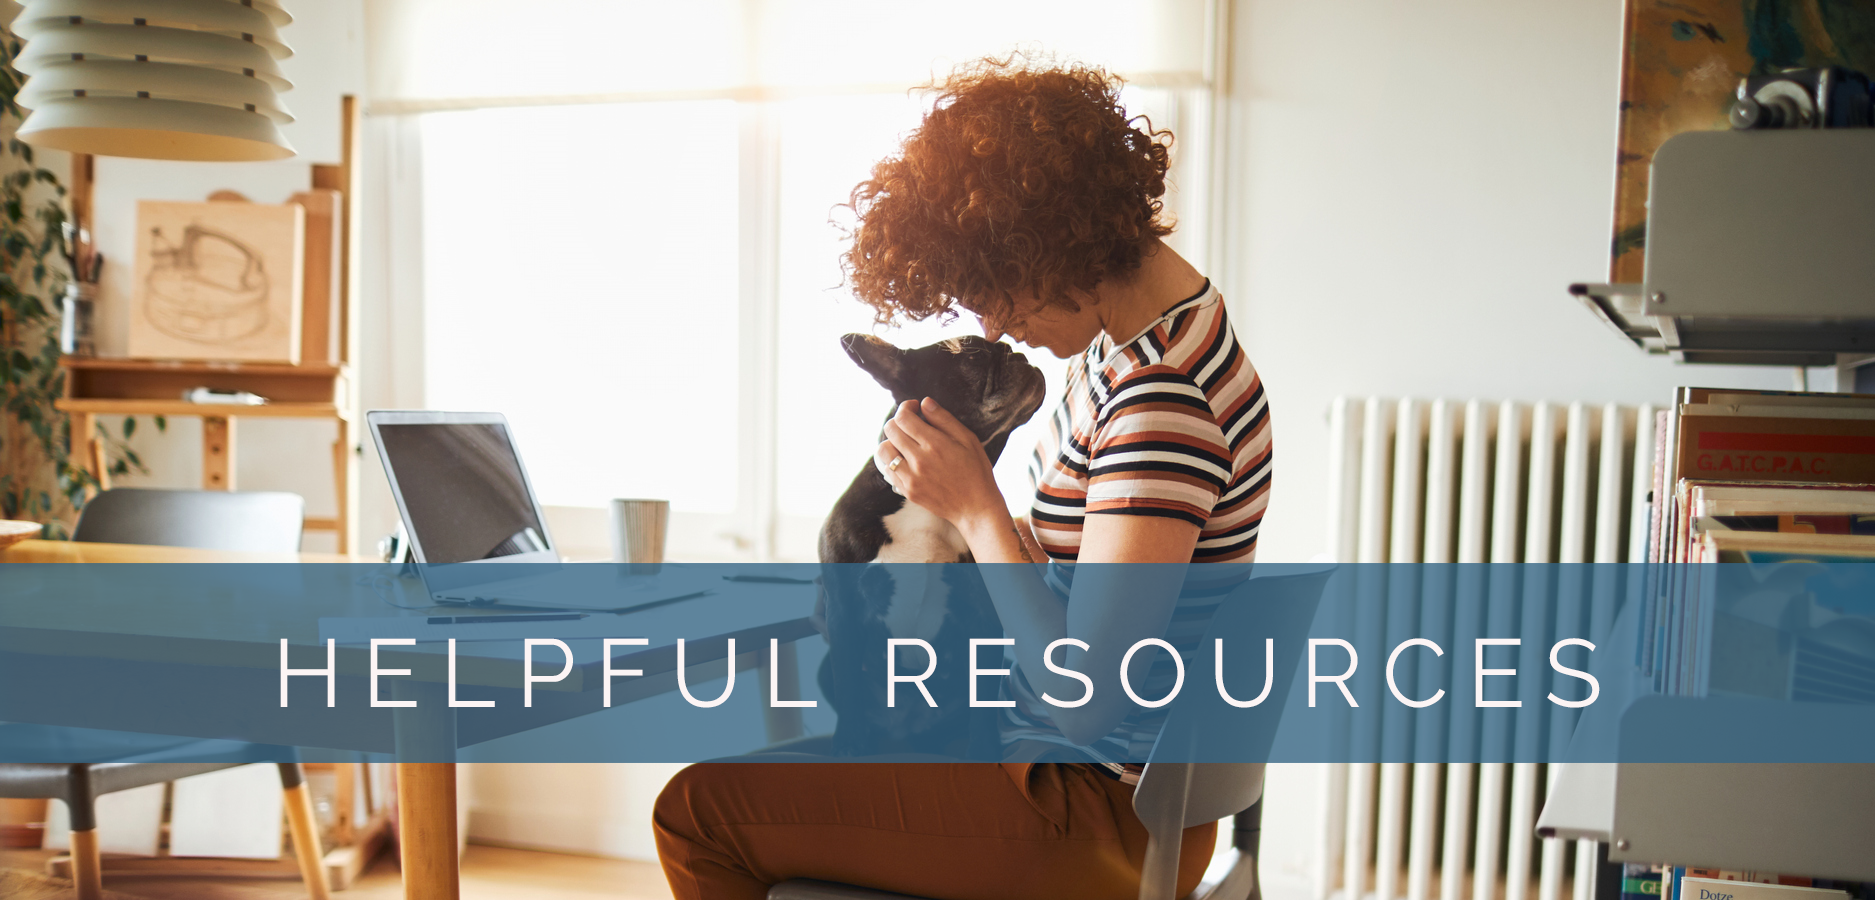 """image of a woman at a table with a dog in her lap with text overlaid that says """"Helpful resources"""""""